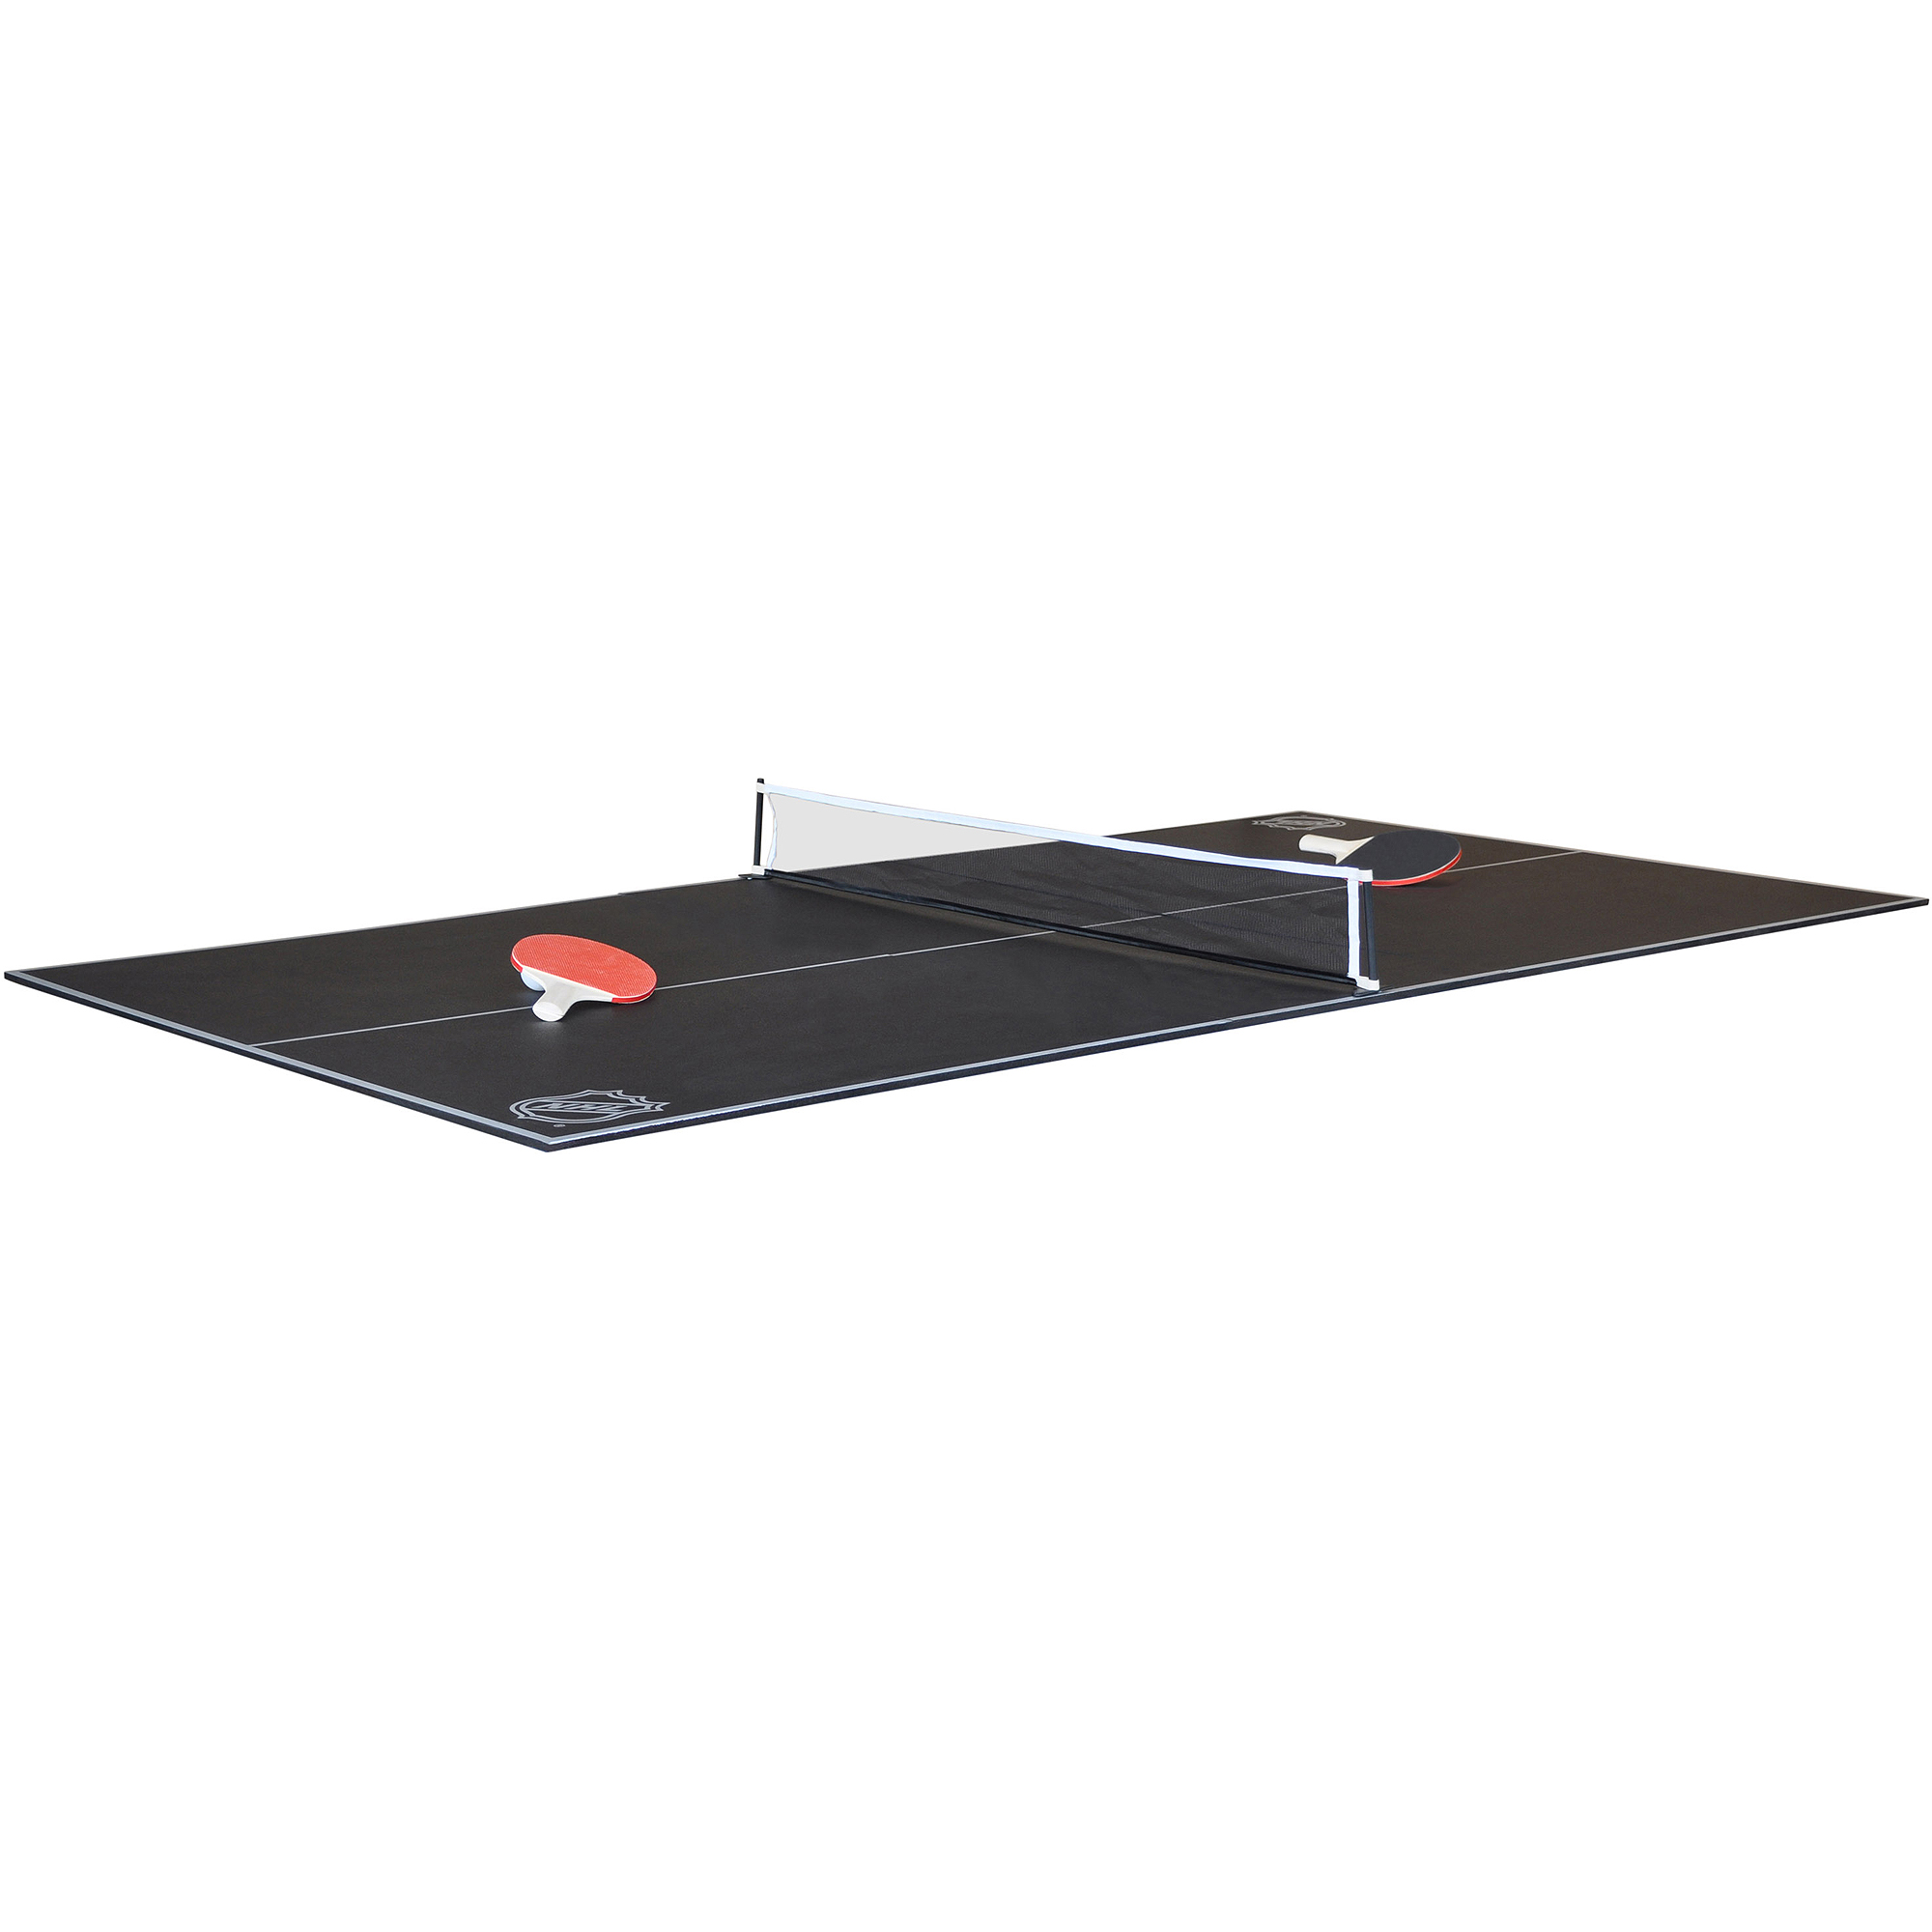 Nhl 80 inch air powered hover hockey table with bonus table tennis nhl 80 inch air powered hover hockey table with bonus table tennis top walmart greentooth